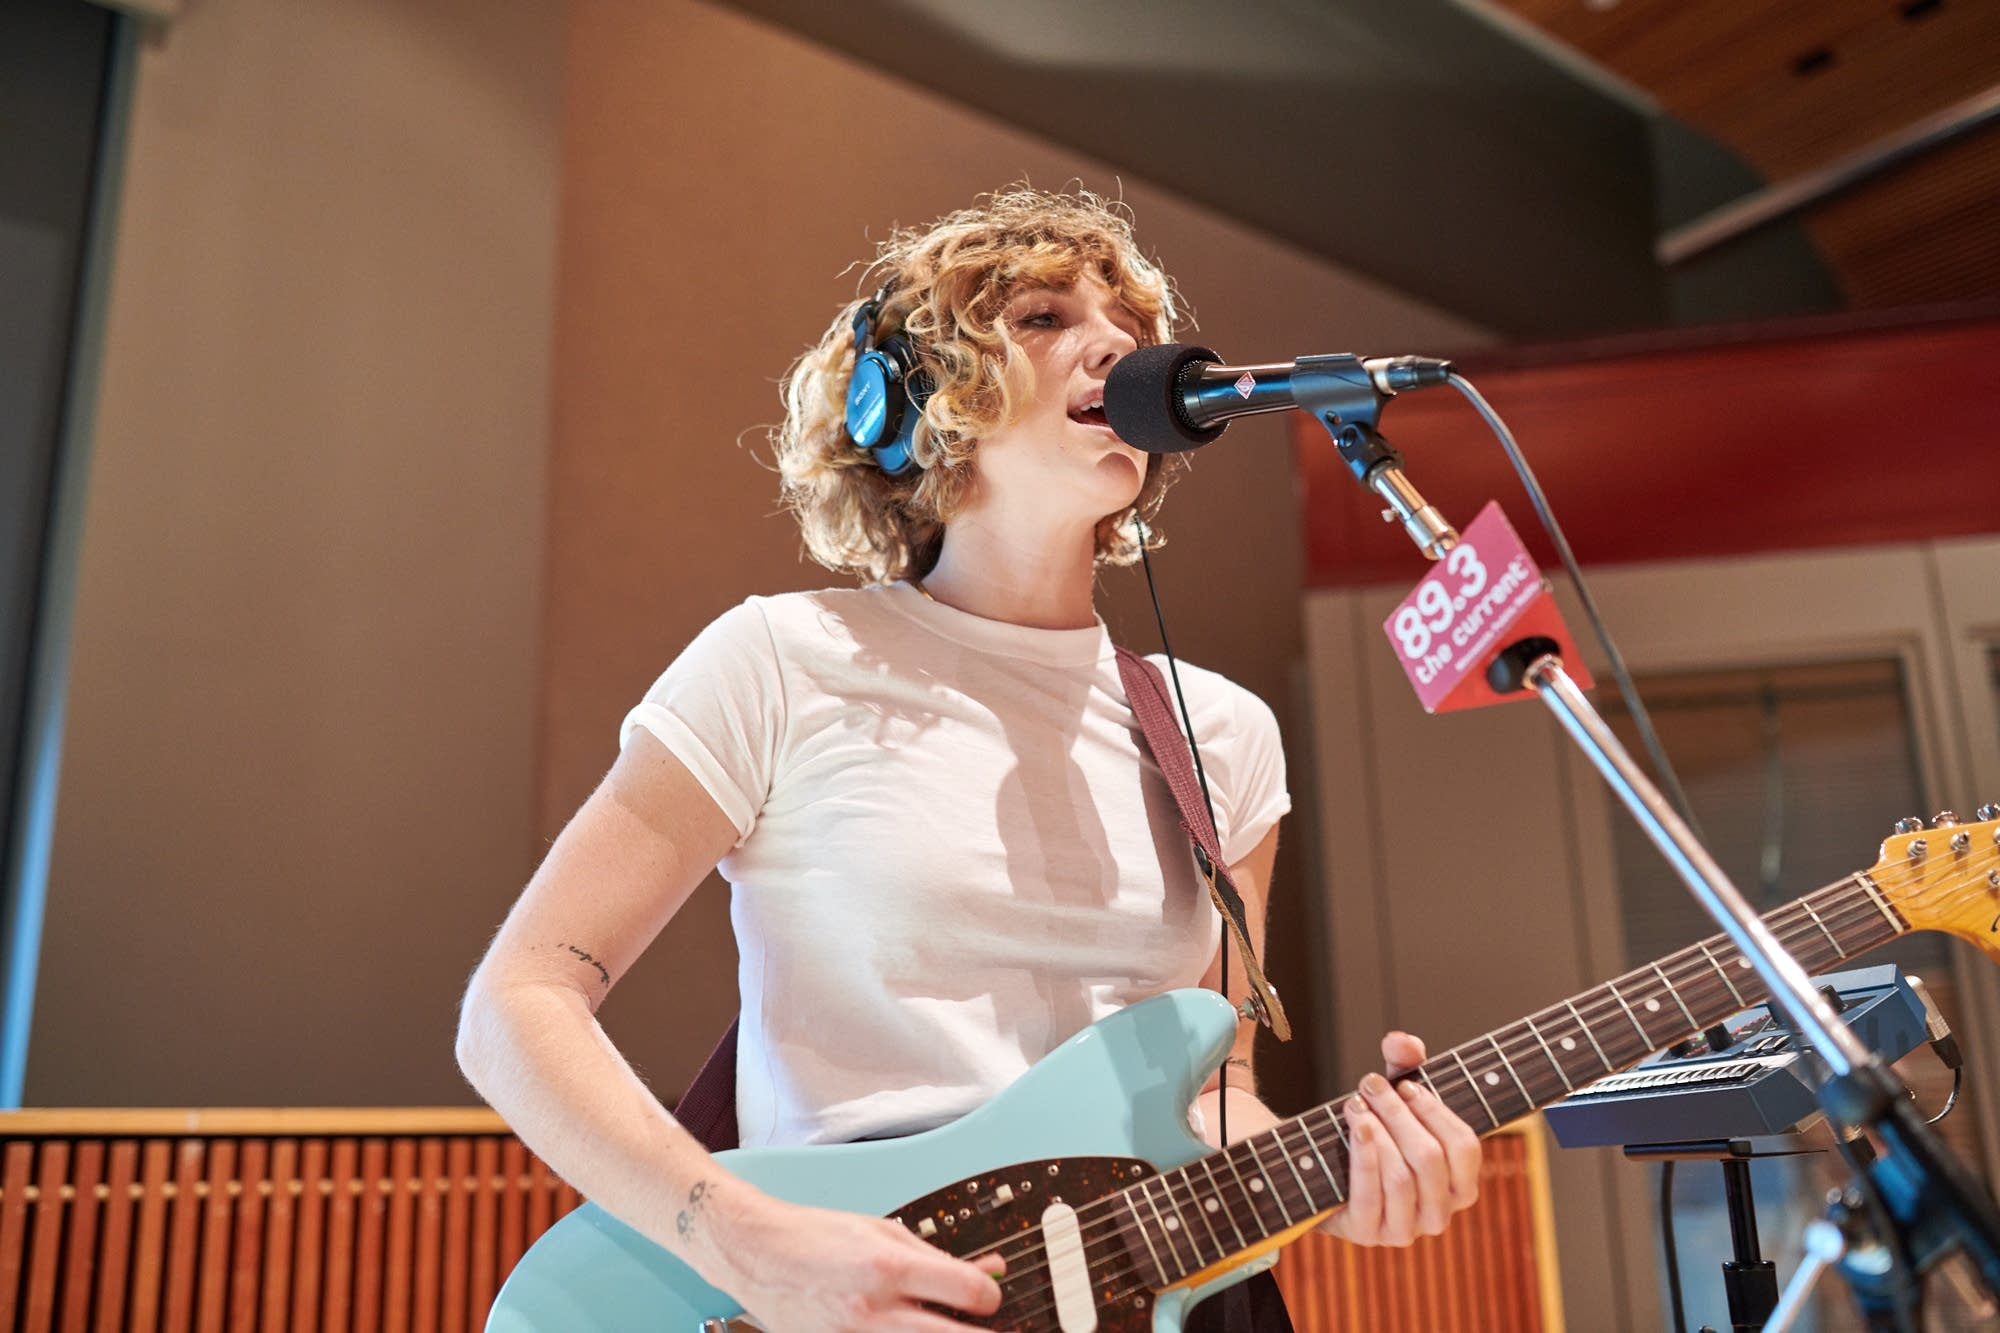 Your Smith performs in The Current studio